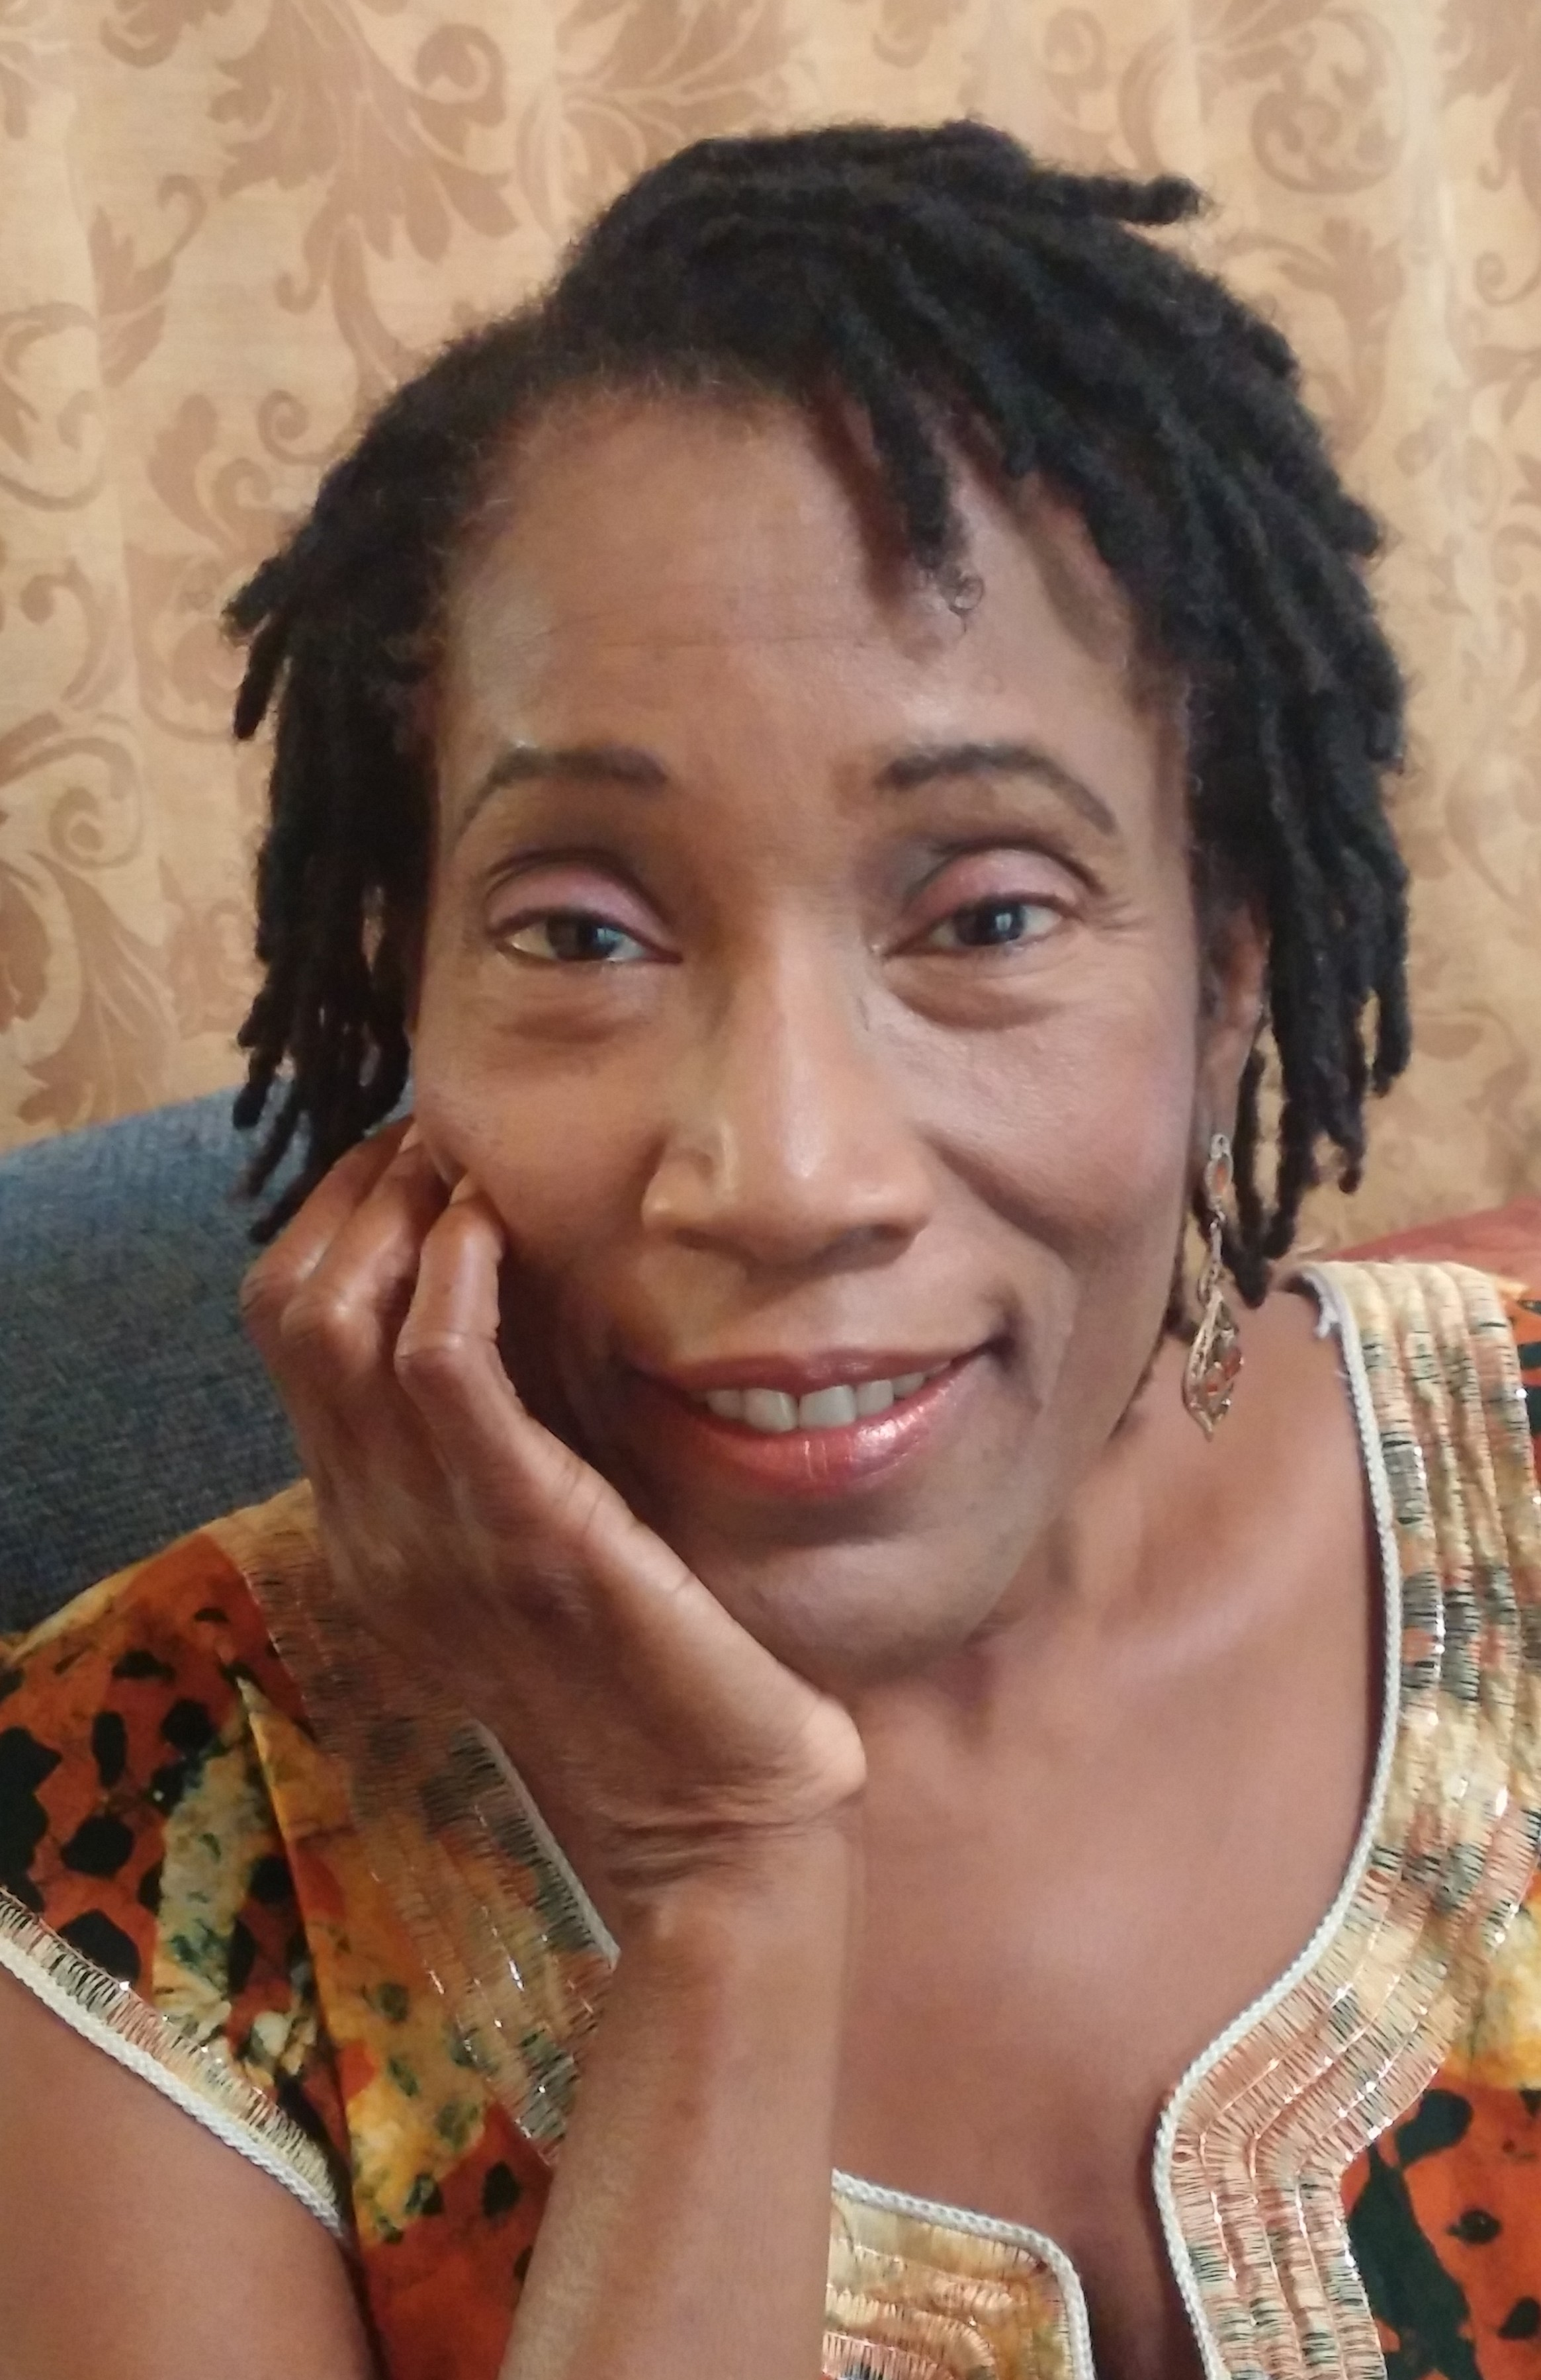 Photo of Muitma Imanii. She is an african American woman with hair in short Locks. She is wearing earrings, a brown shirt, and smiles as she leans on one hand.